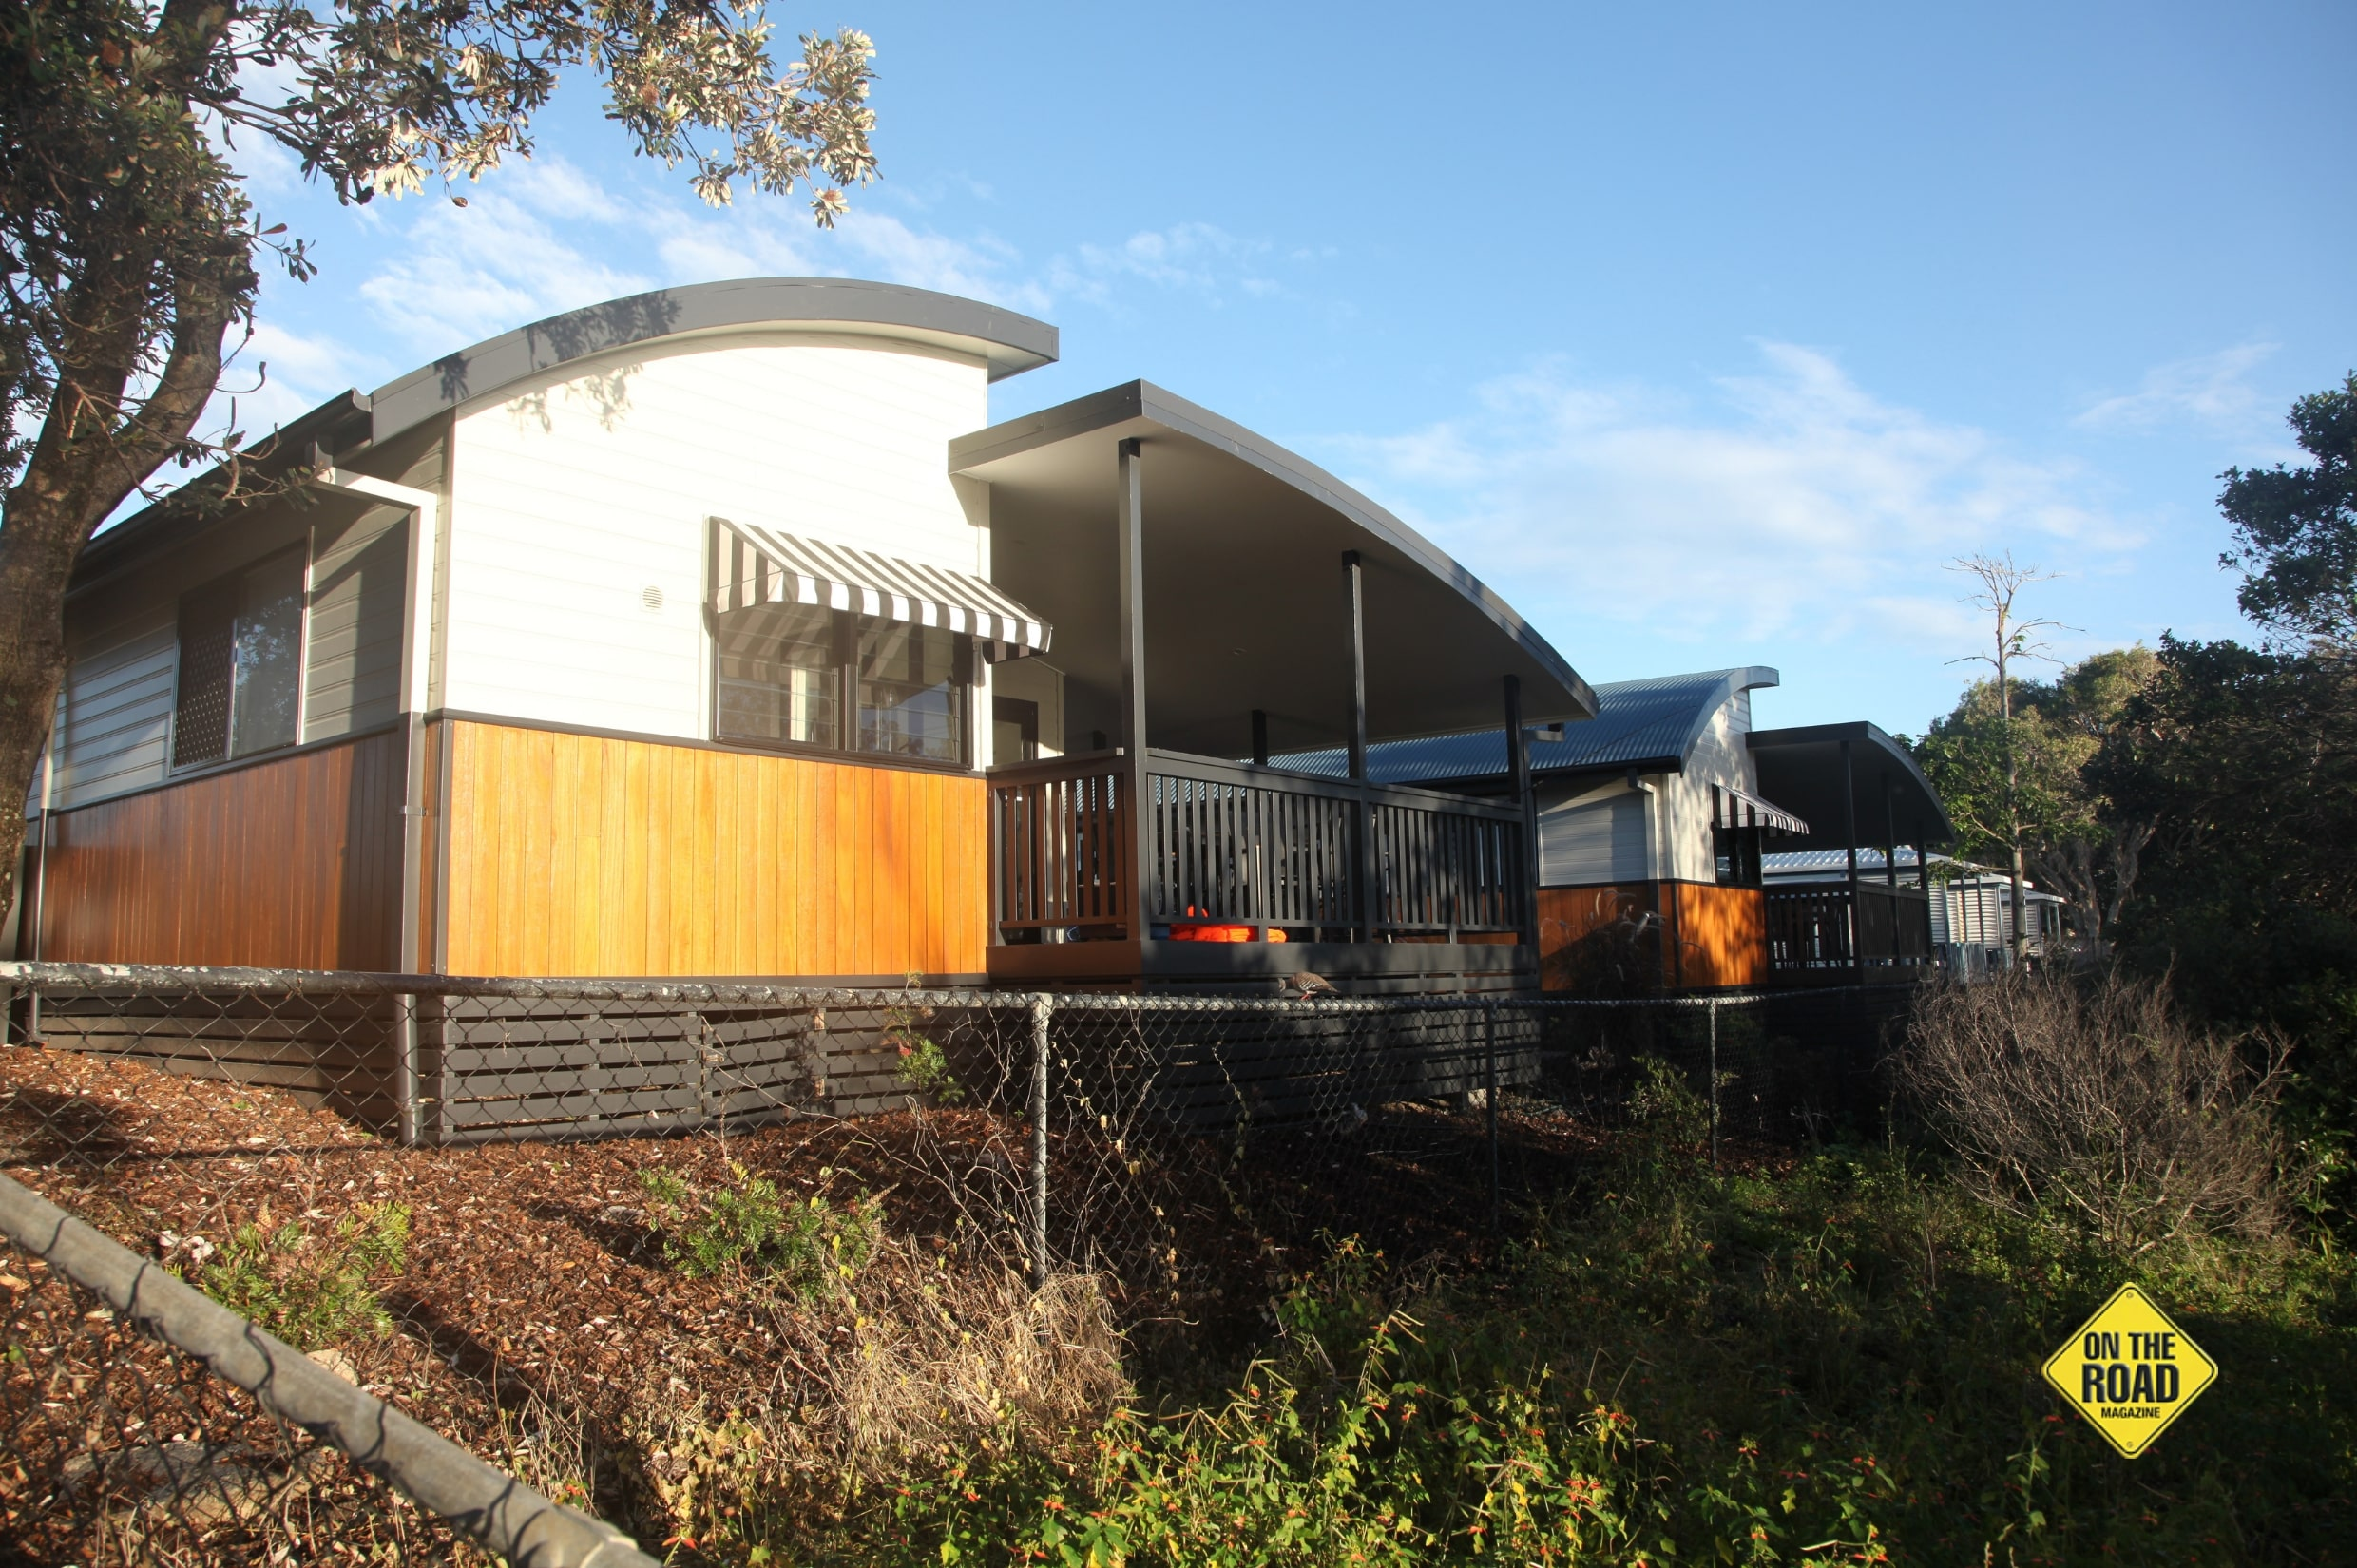 The first class recently renovated Letitia Cabins at Fingal Head Holiday Park.